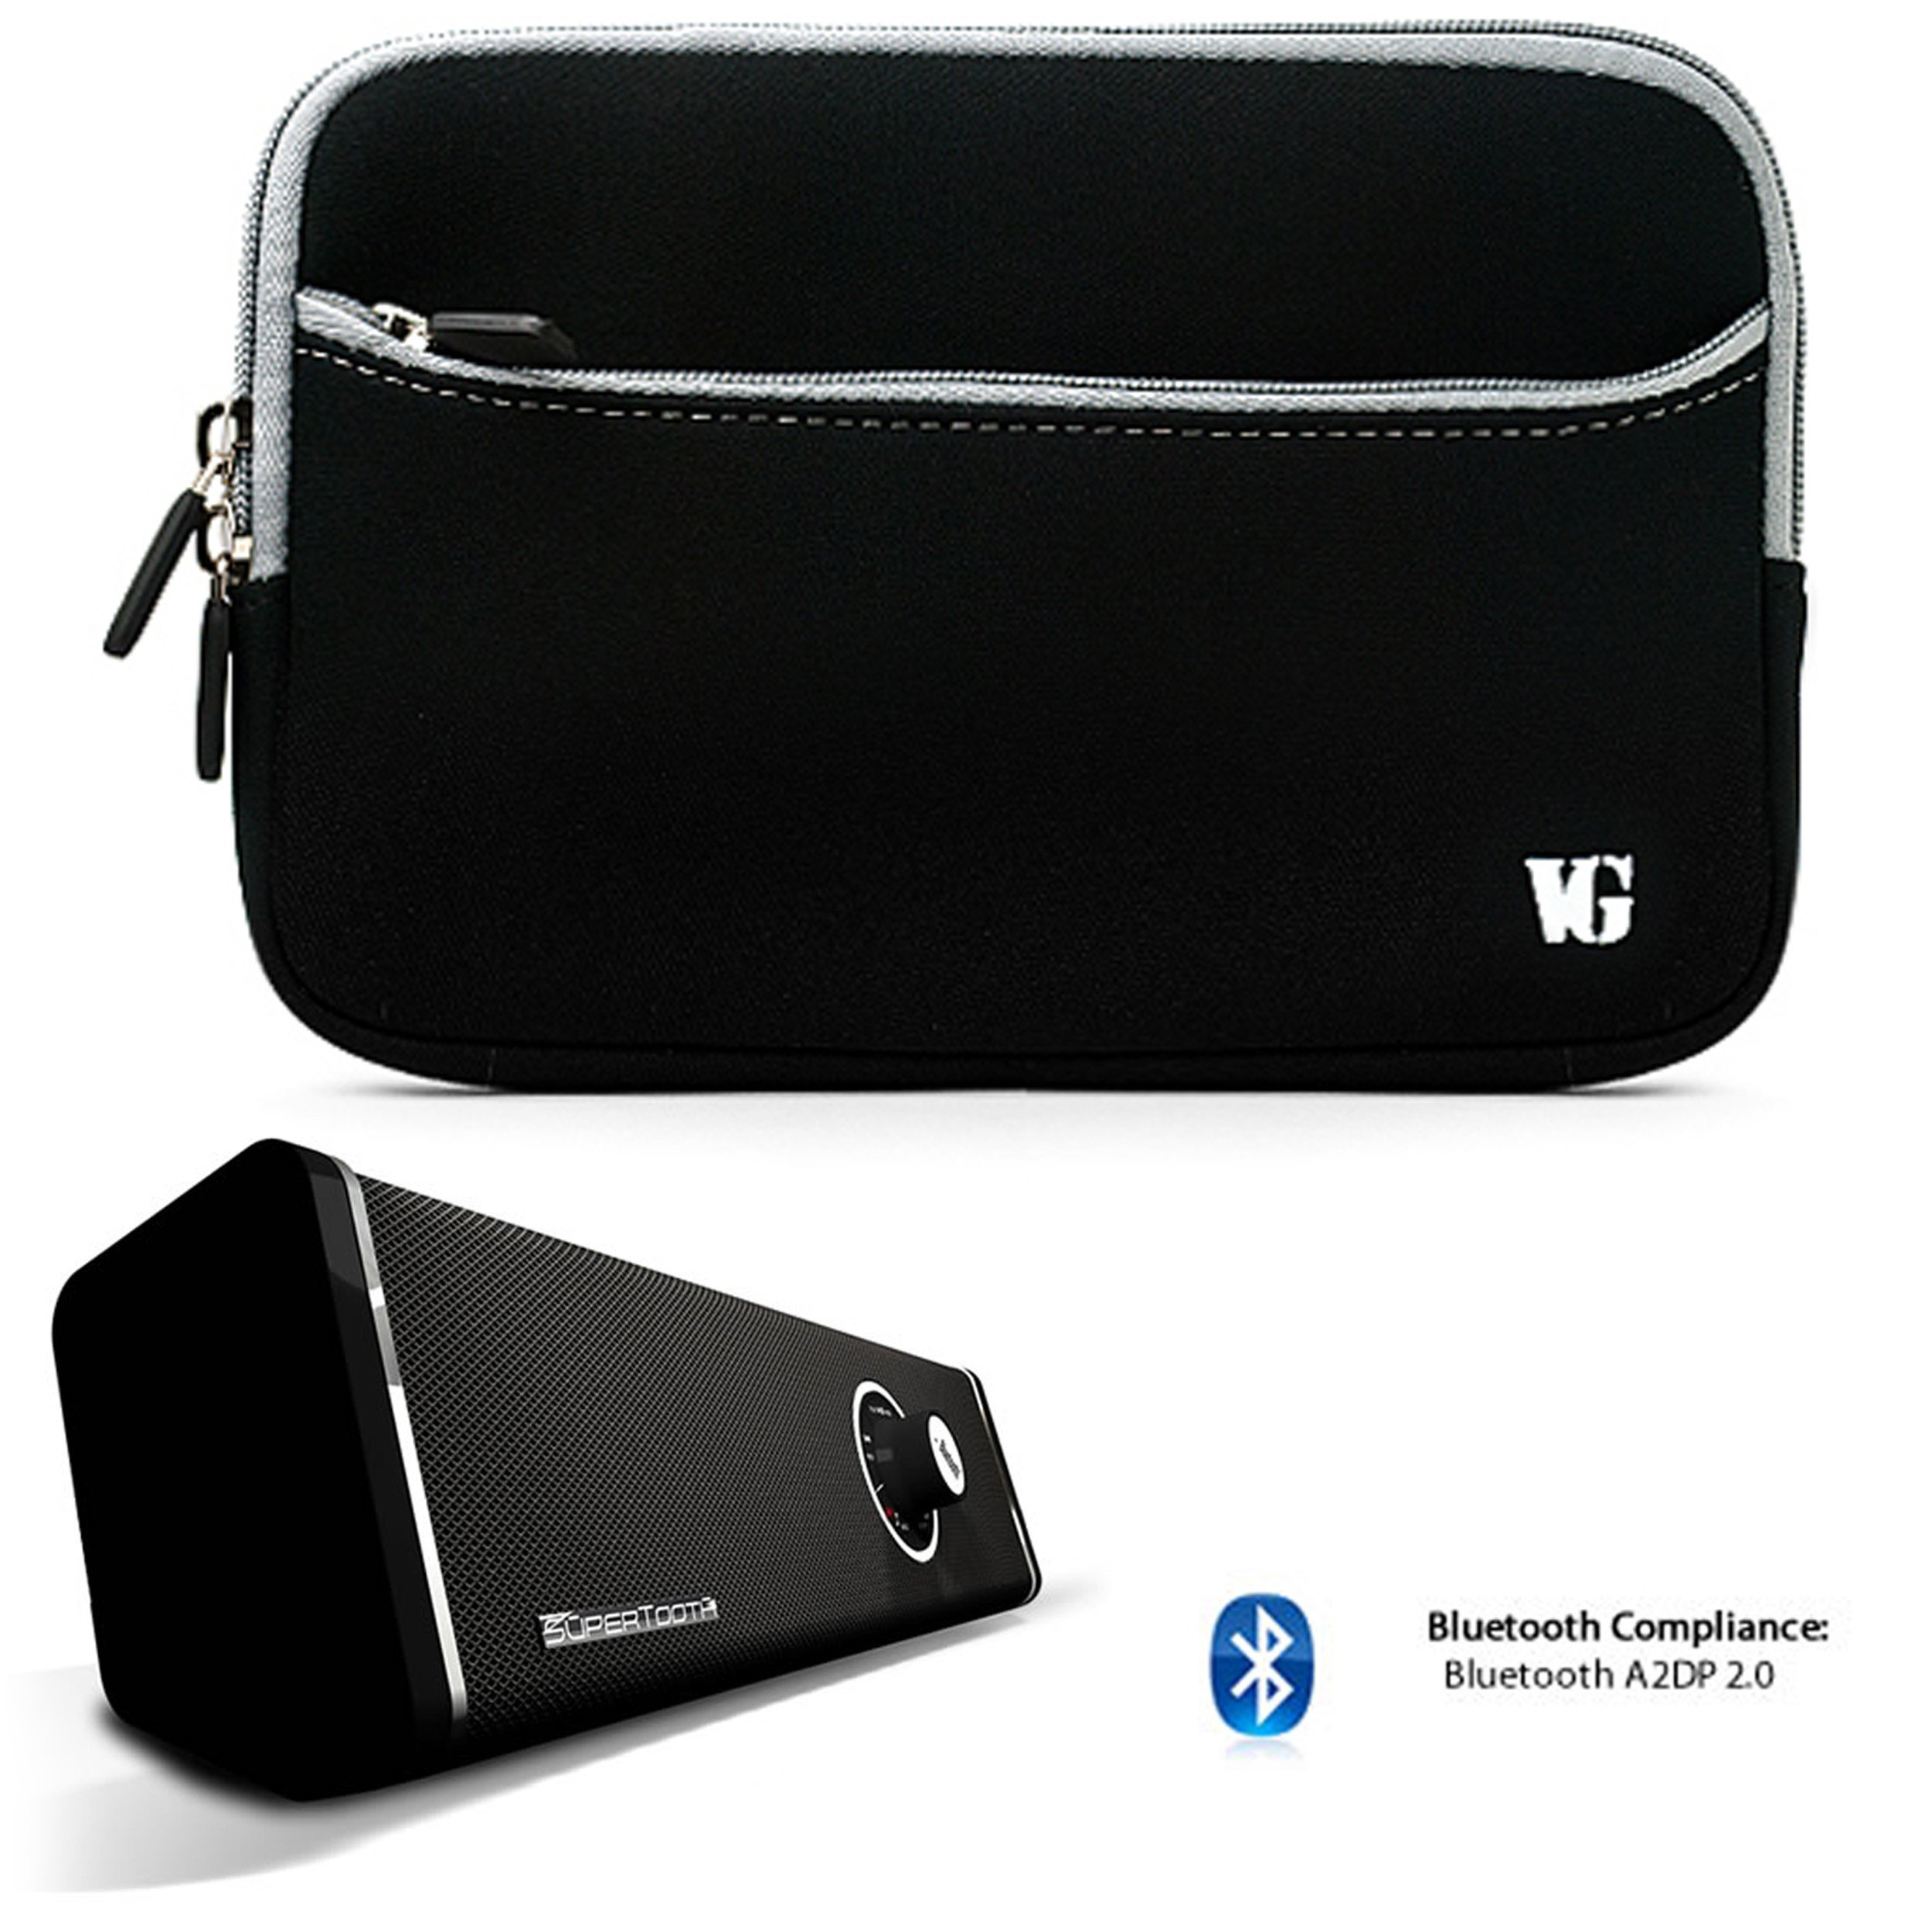 Anti-Scratch Slim Neoprene Sleeve For Verizon Wireless Ellipsis 8 HD / Ellipsis 7 HD Tablet + Bluetooth Speaker by eBigValue